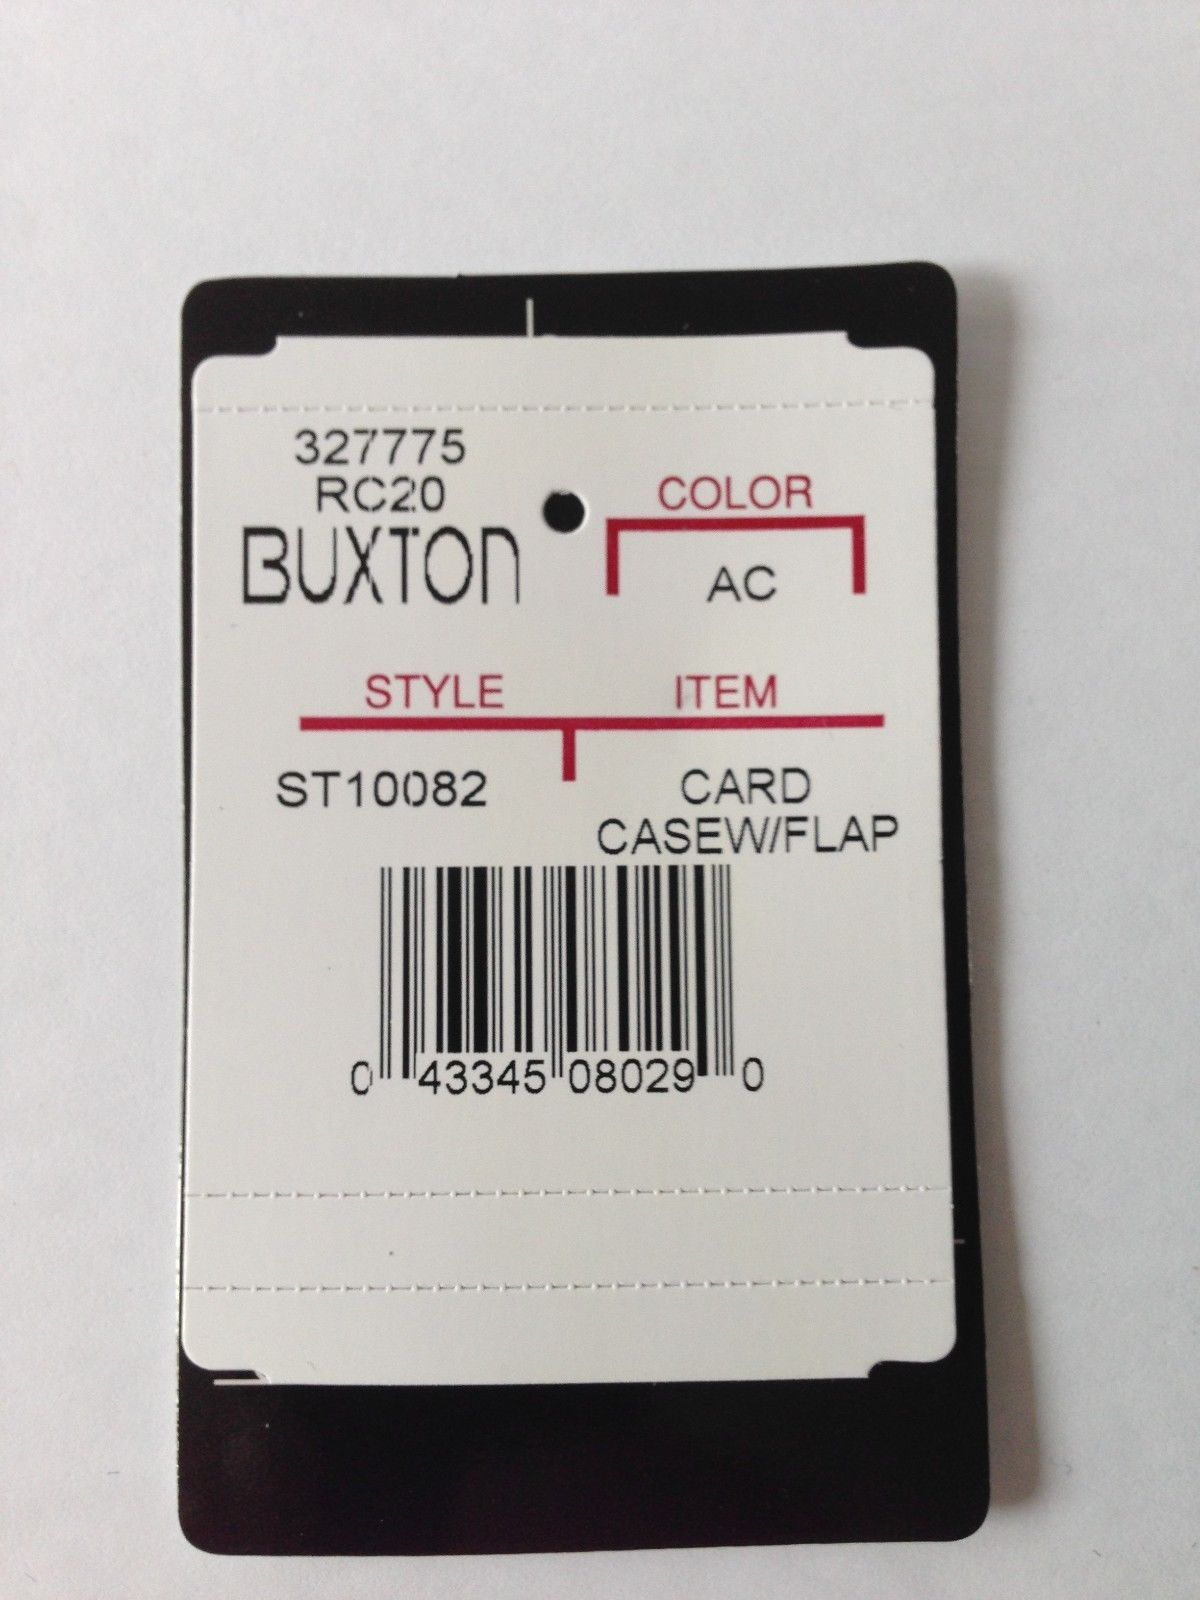 Buxton Business Card / Credit Card Case / and similar items